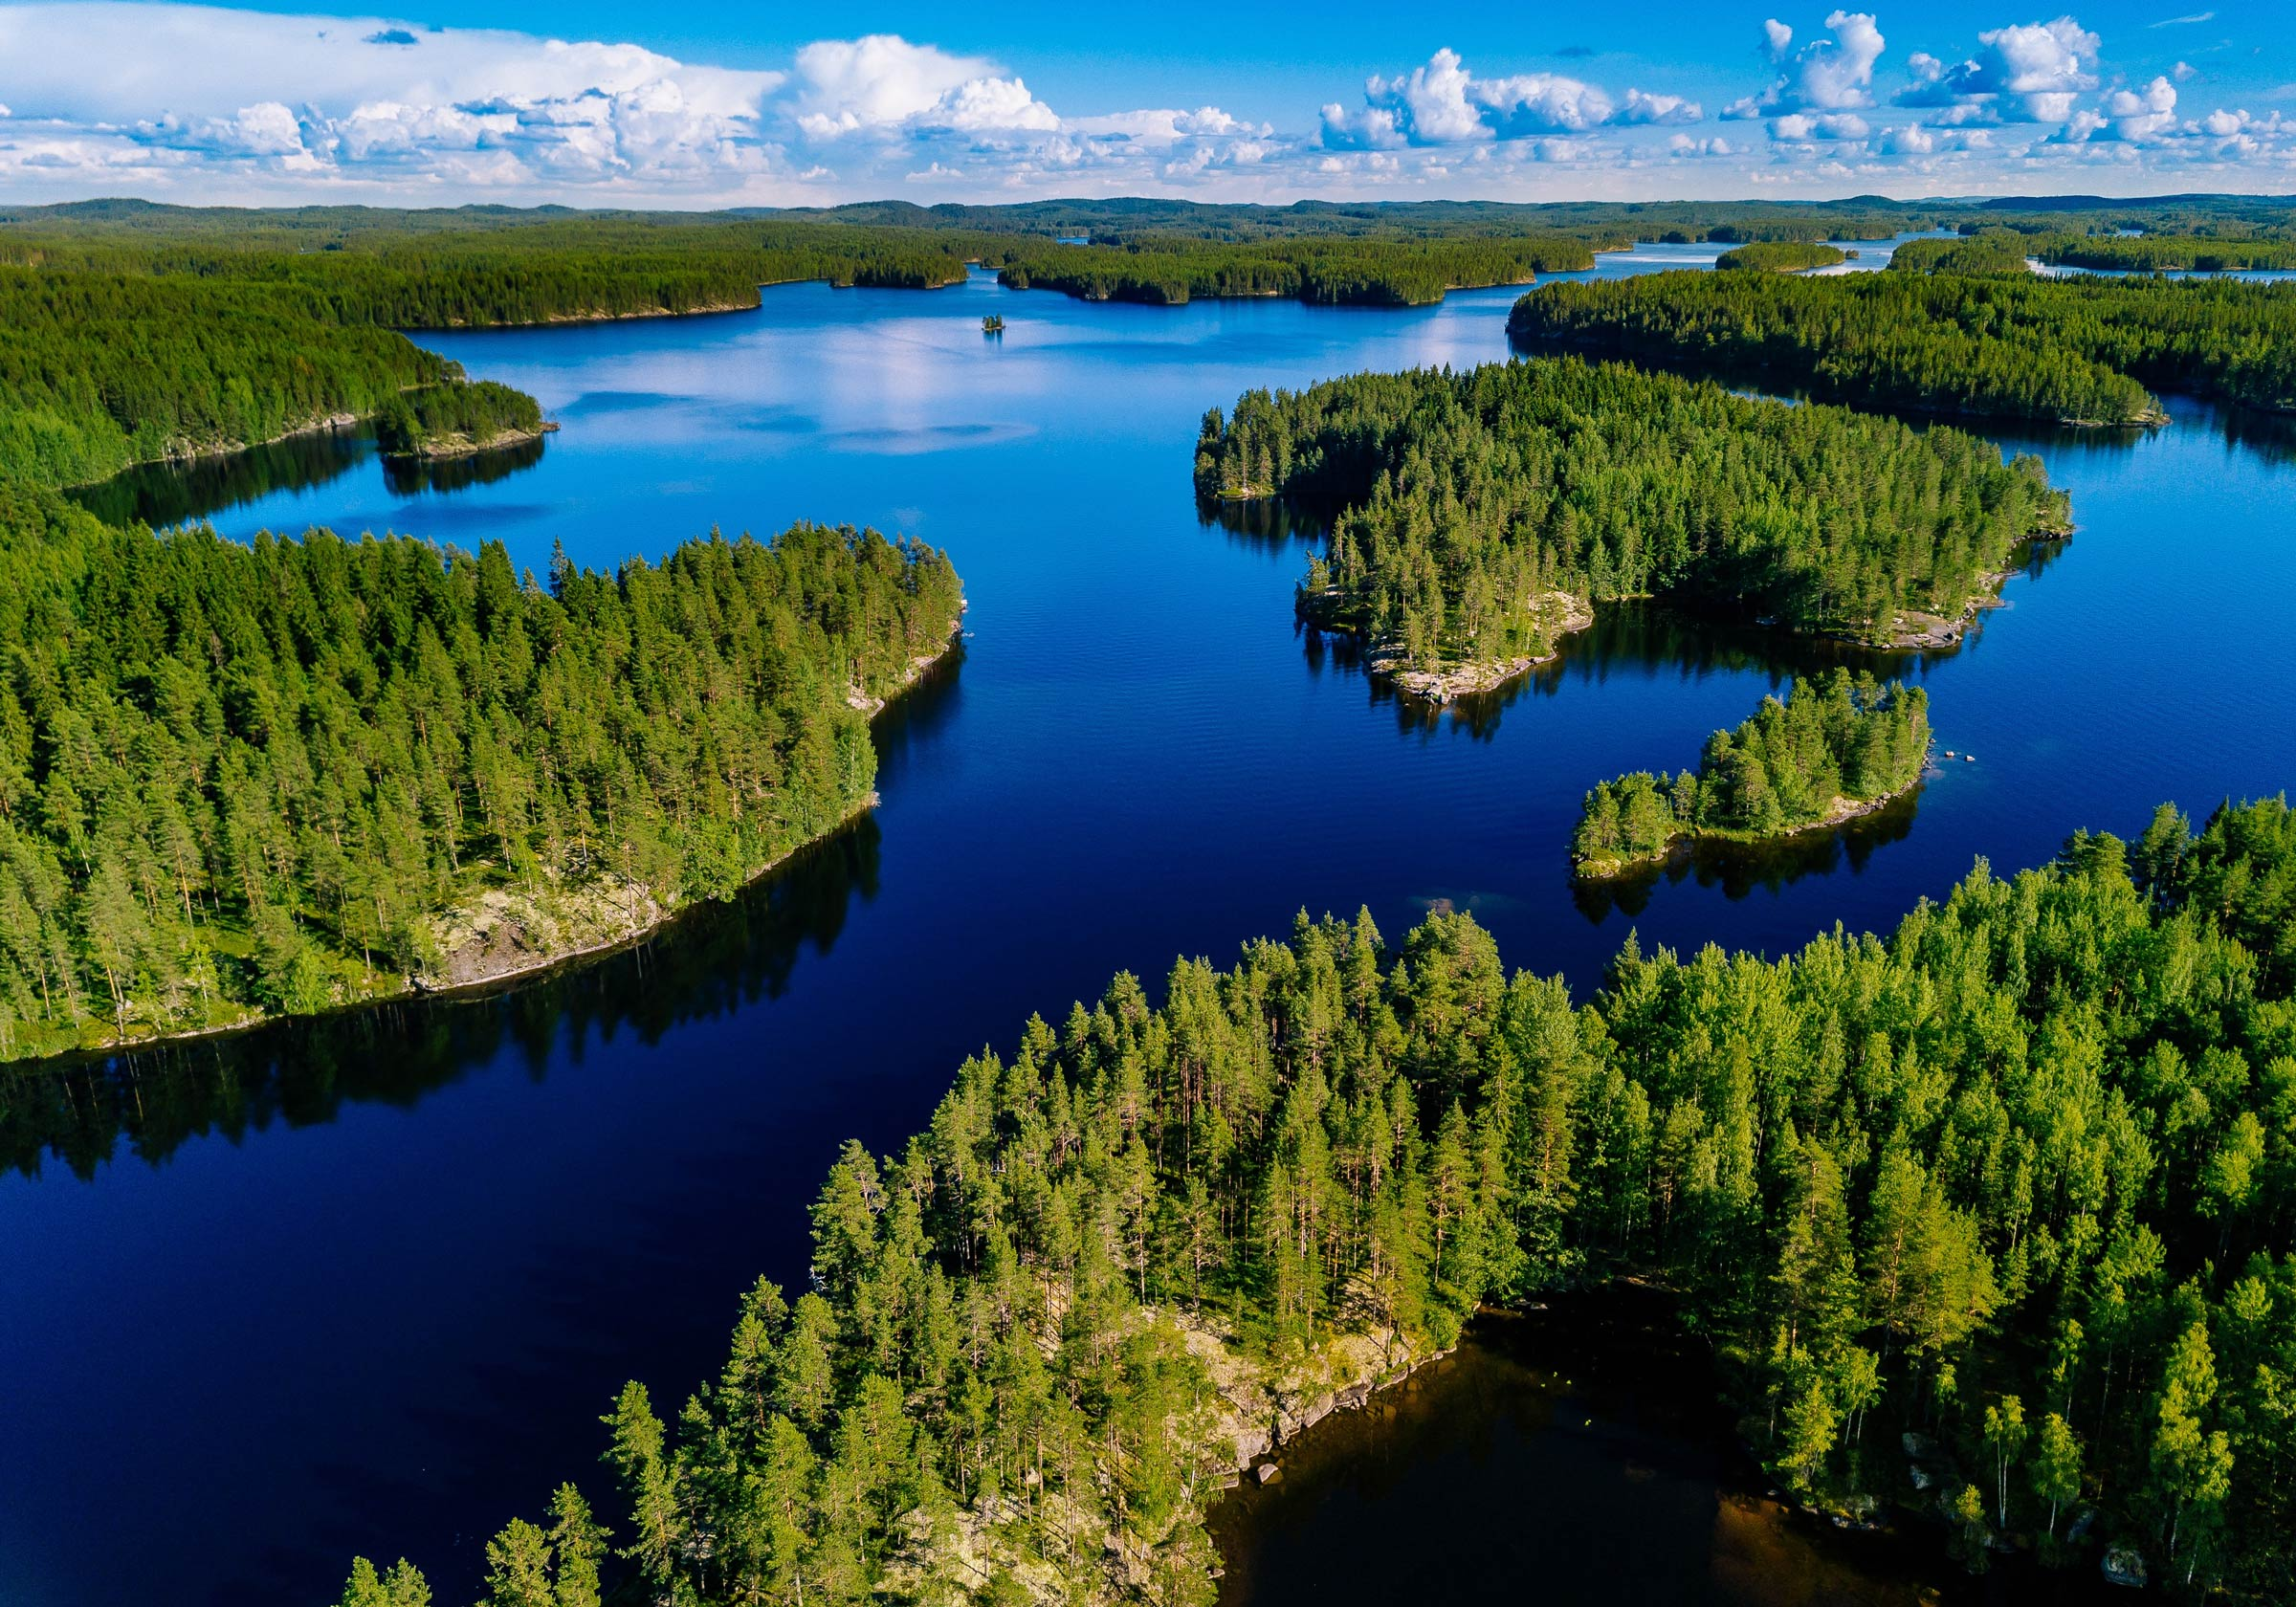 An aerial view of lakes in the south of Finland